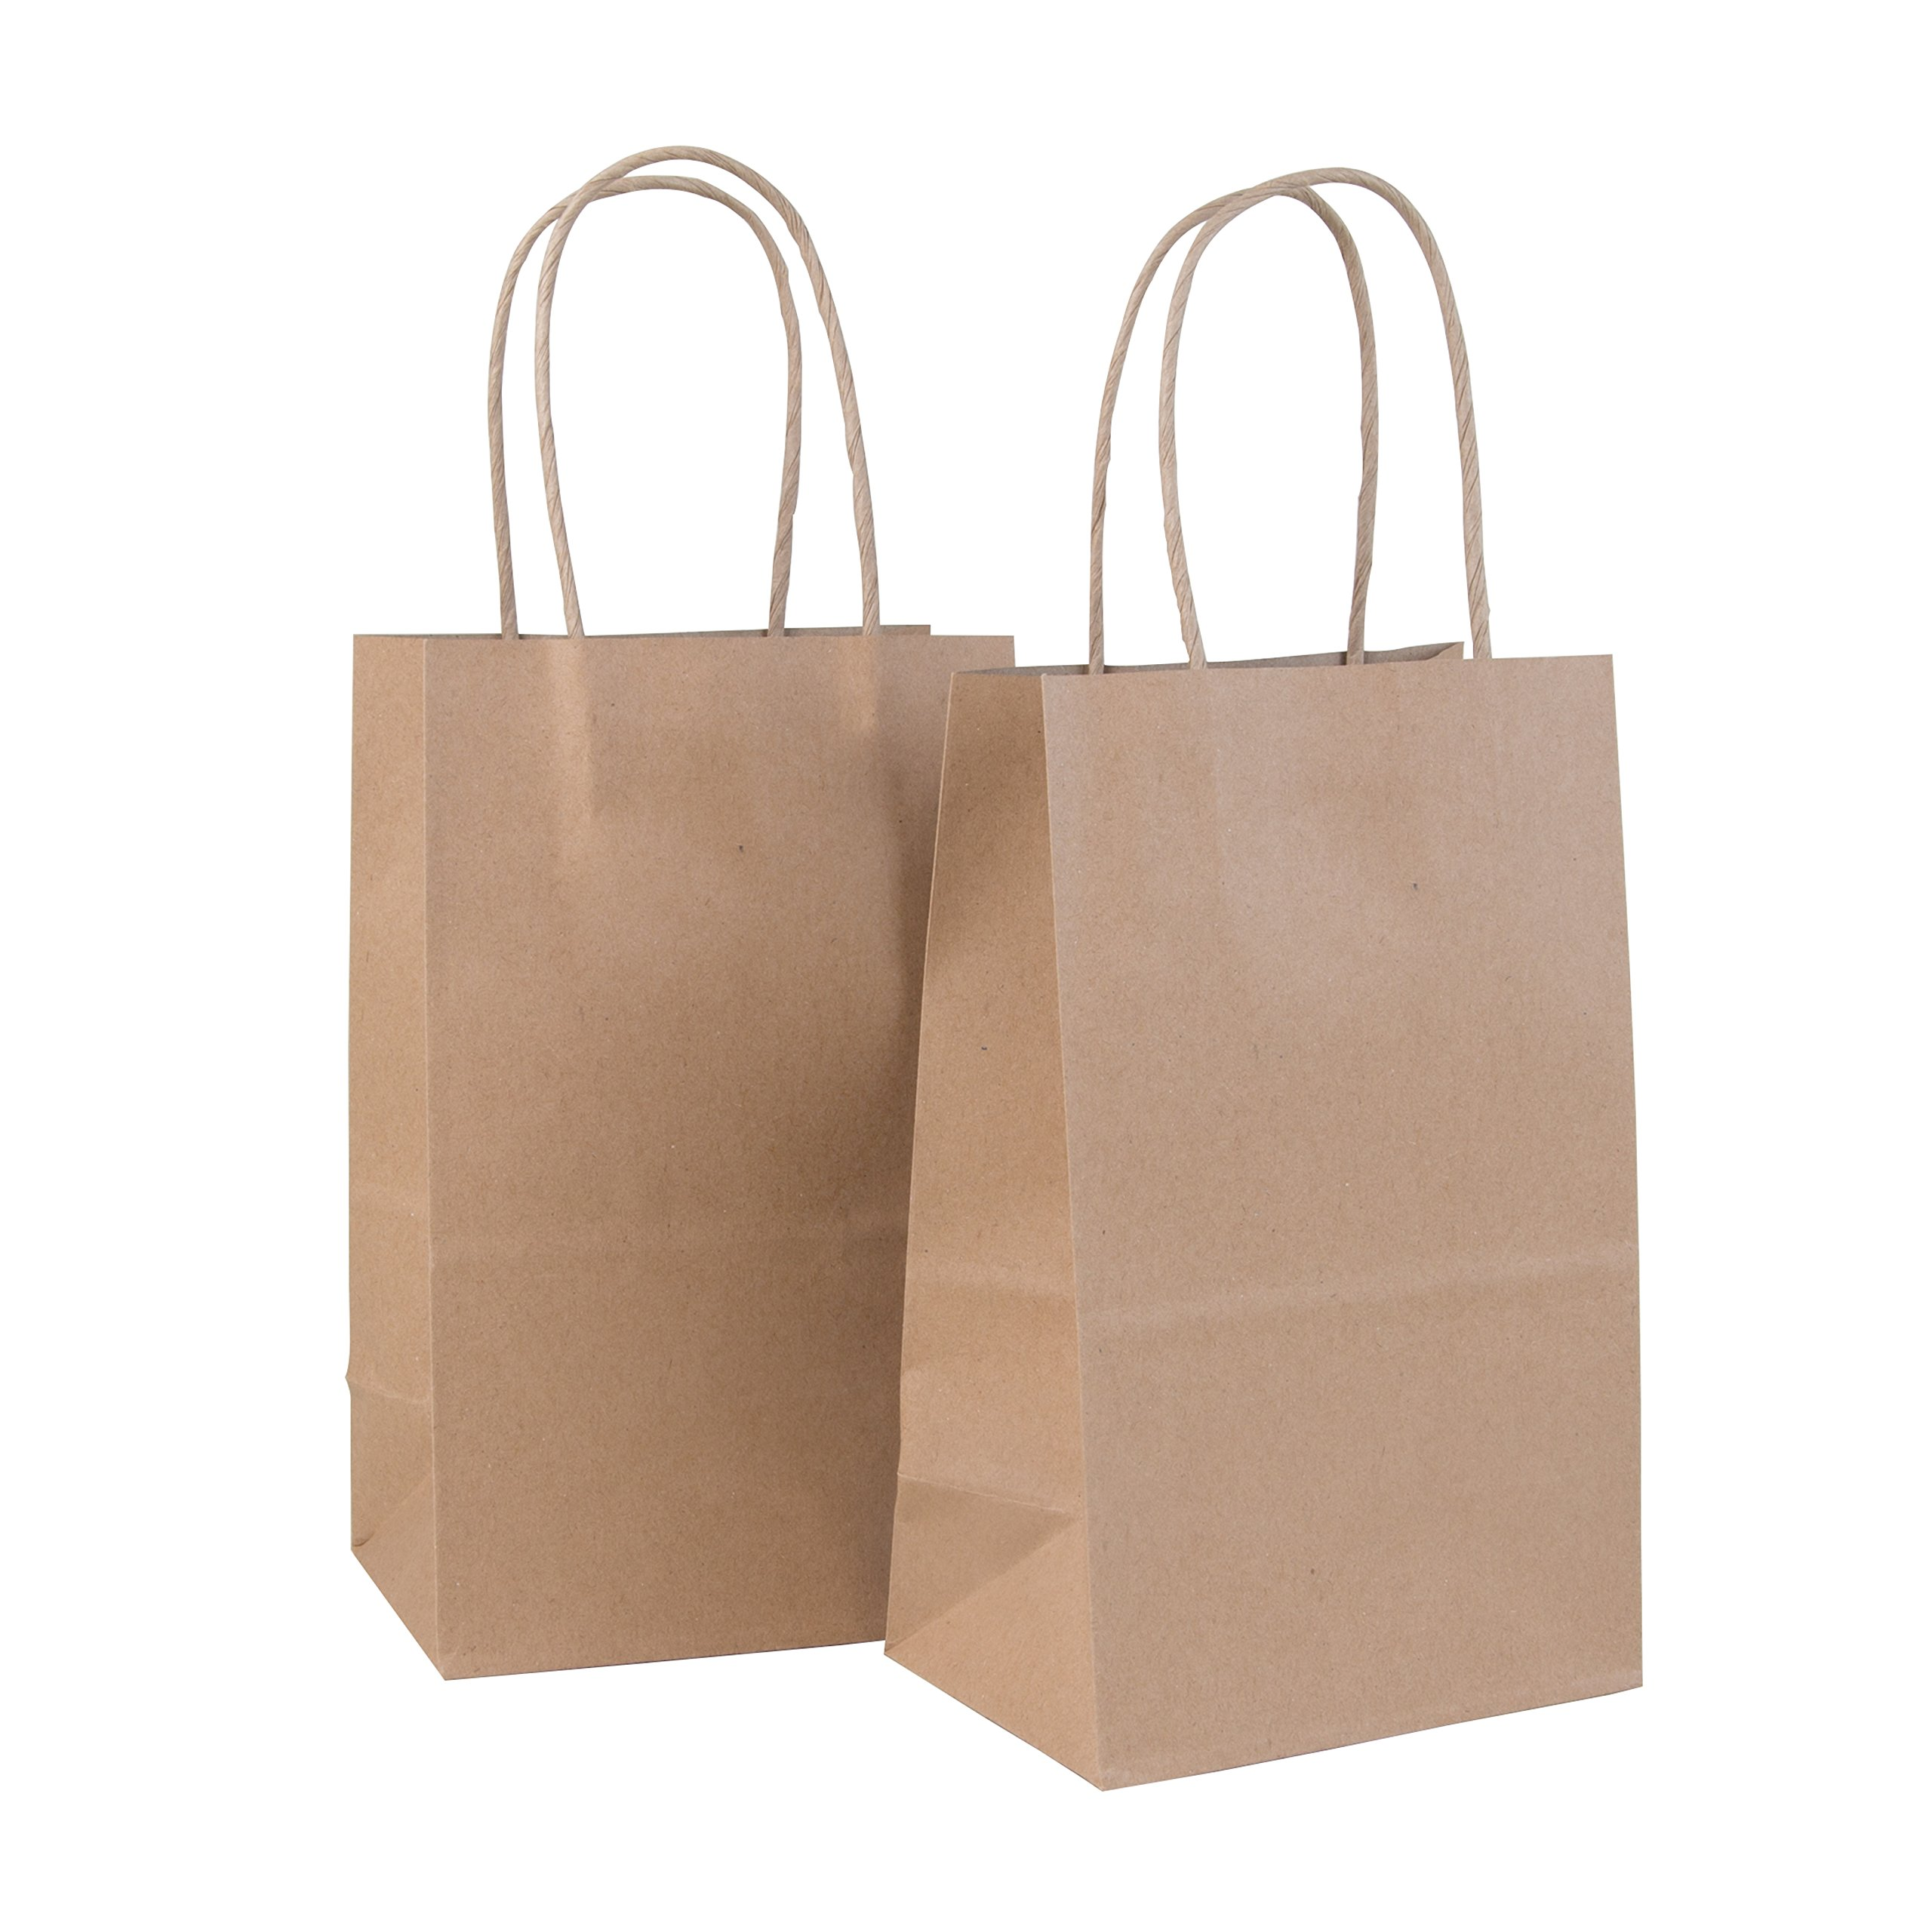 Incredible Packaging - 5.5'' x 3.25'' x 8.37'' Kraft Paper Bags with Handles for Shopping, Lunch, Retail and Merchandise. Strong and Reusable - 120 Bags Count - 80 Paper Thickness (120, Brown)